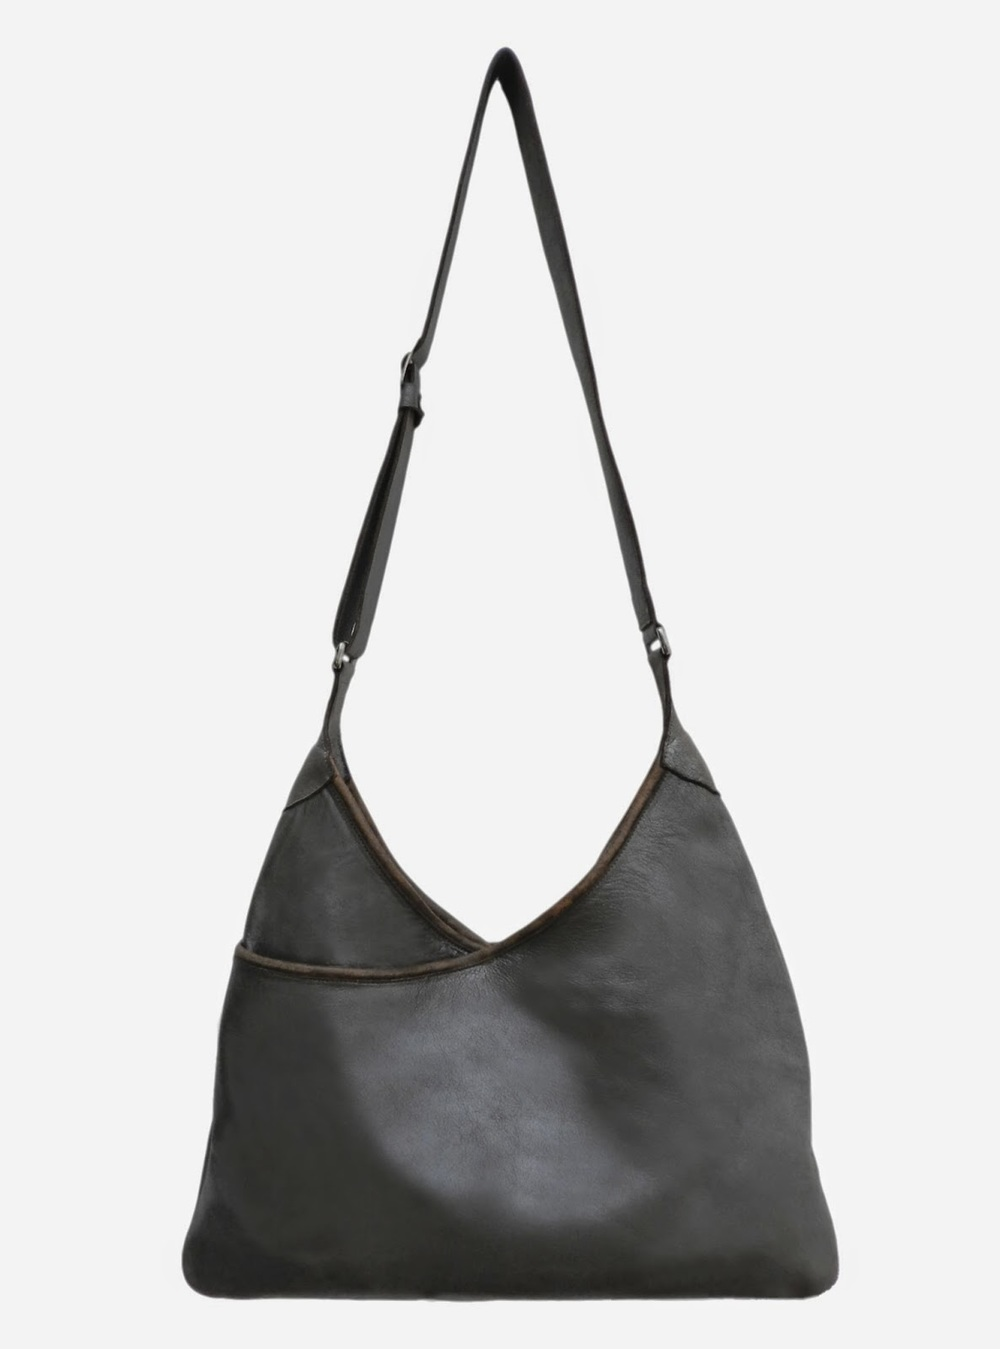 Lily and Lola 'Lisa' Metallic Taupe Leather